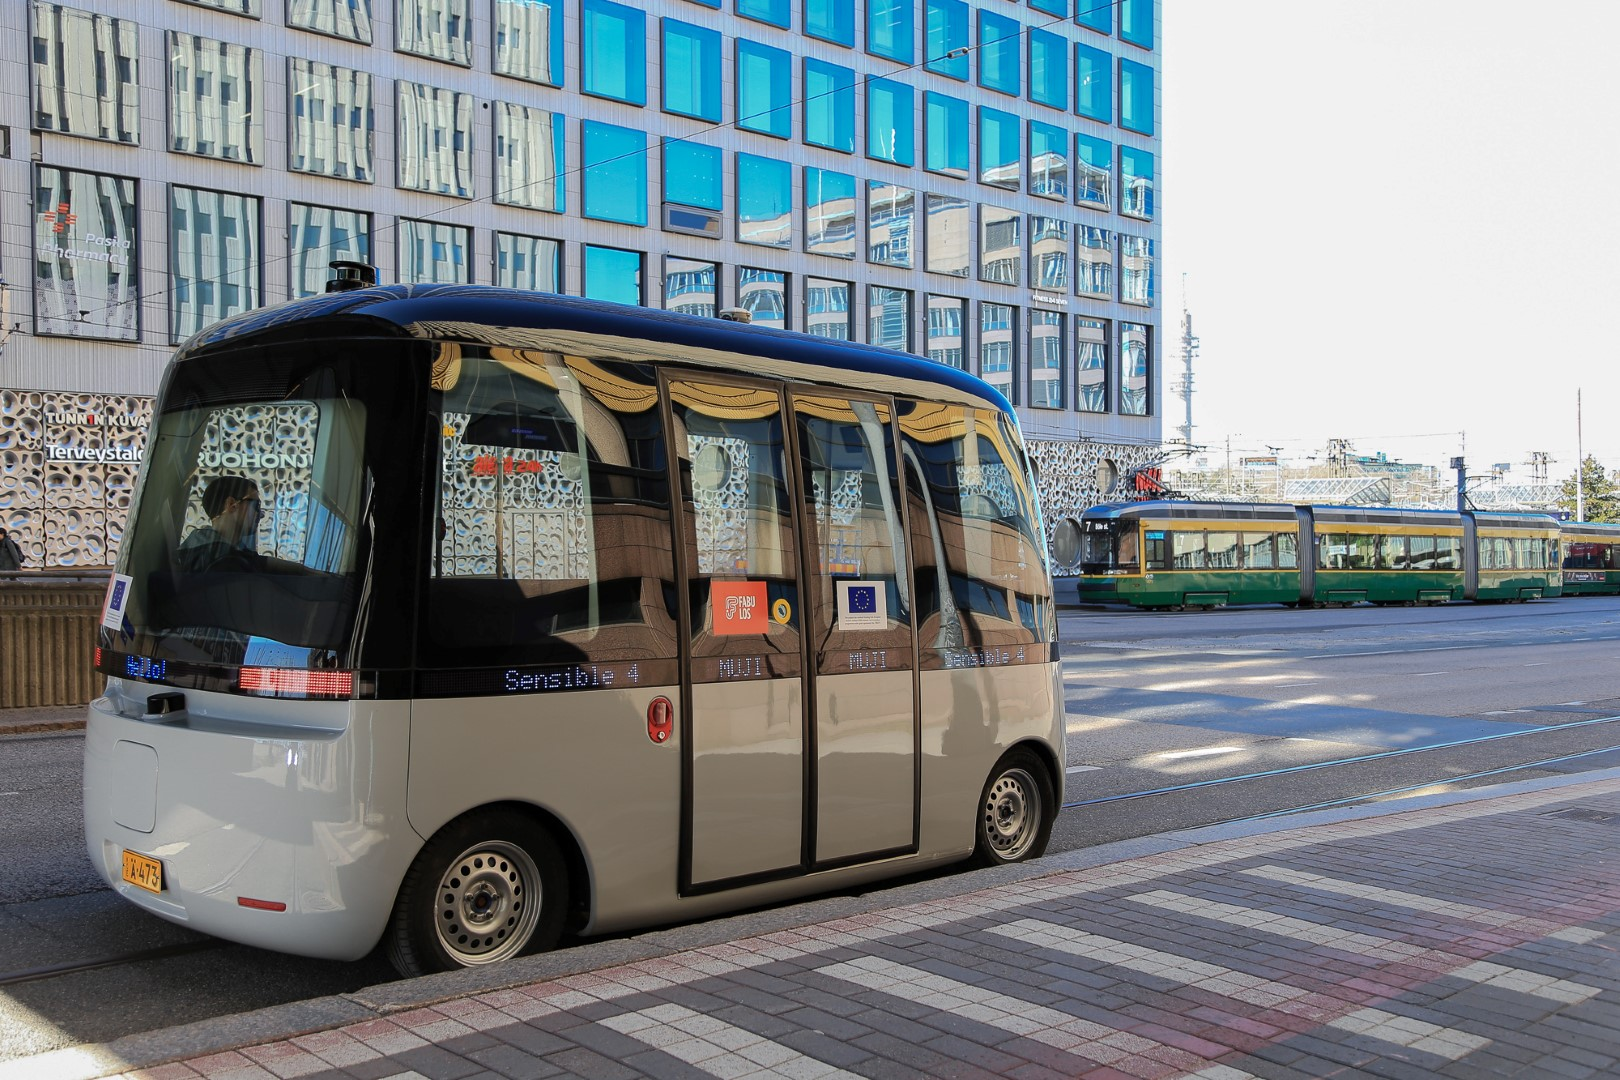 The robot bus will begin shuttling regularly in Helsinki on Wednesday, June 10. Picture: Forum Virium Helsinki